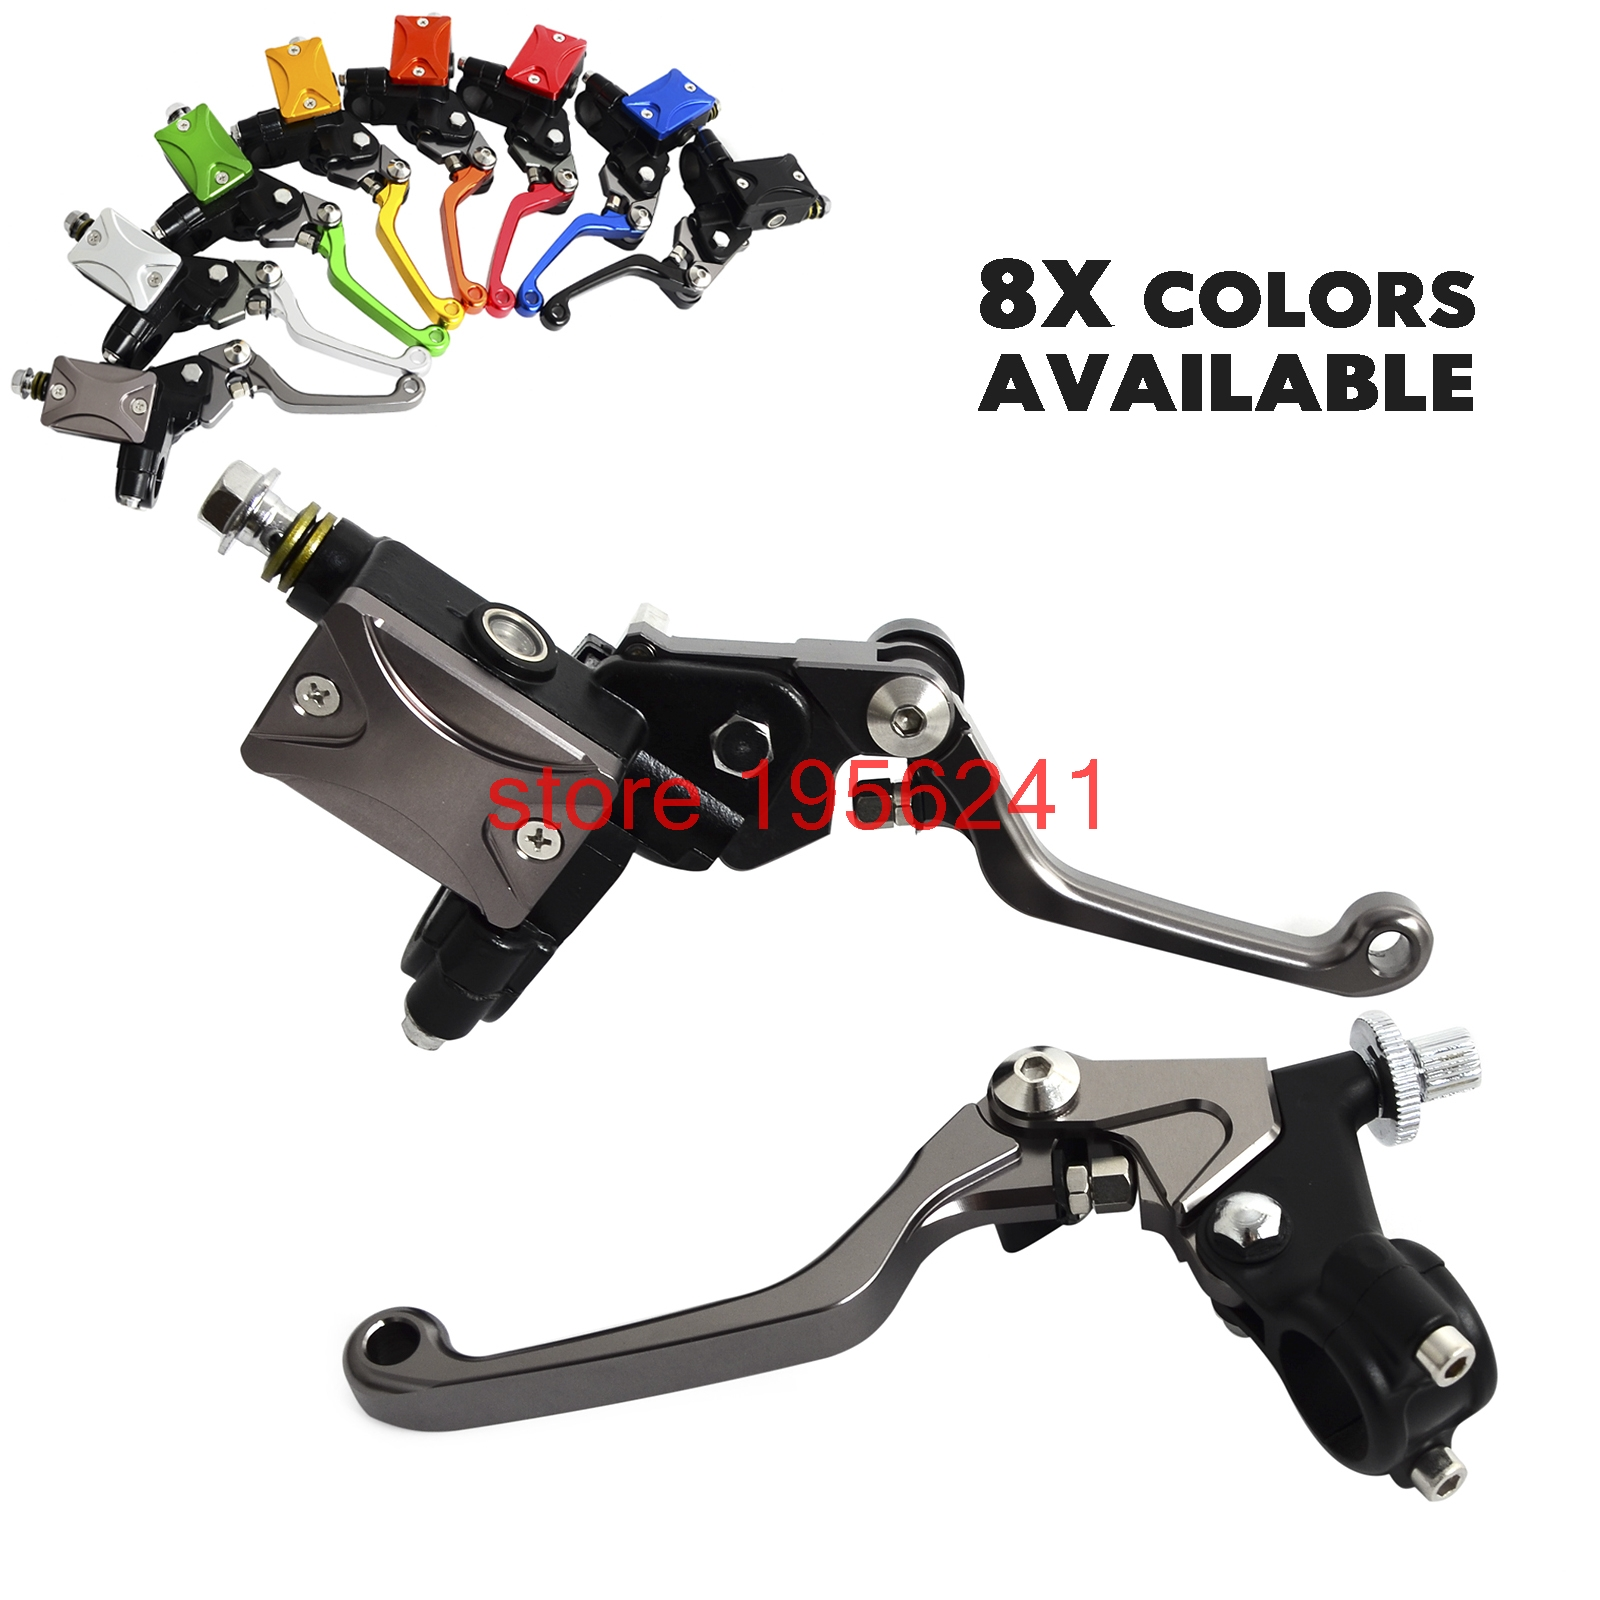 H2CNC Hydraulic Brake & Cable Clutch Lever Set Assembly For Suzuki RM85 RM125 RM250 RMZ250 RMZ450 DRZ450S DRZ450M RMX 250S 450Z